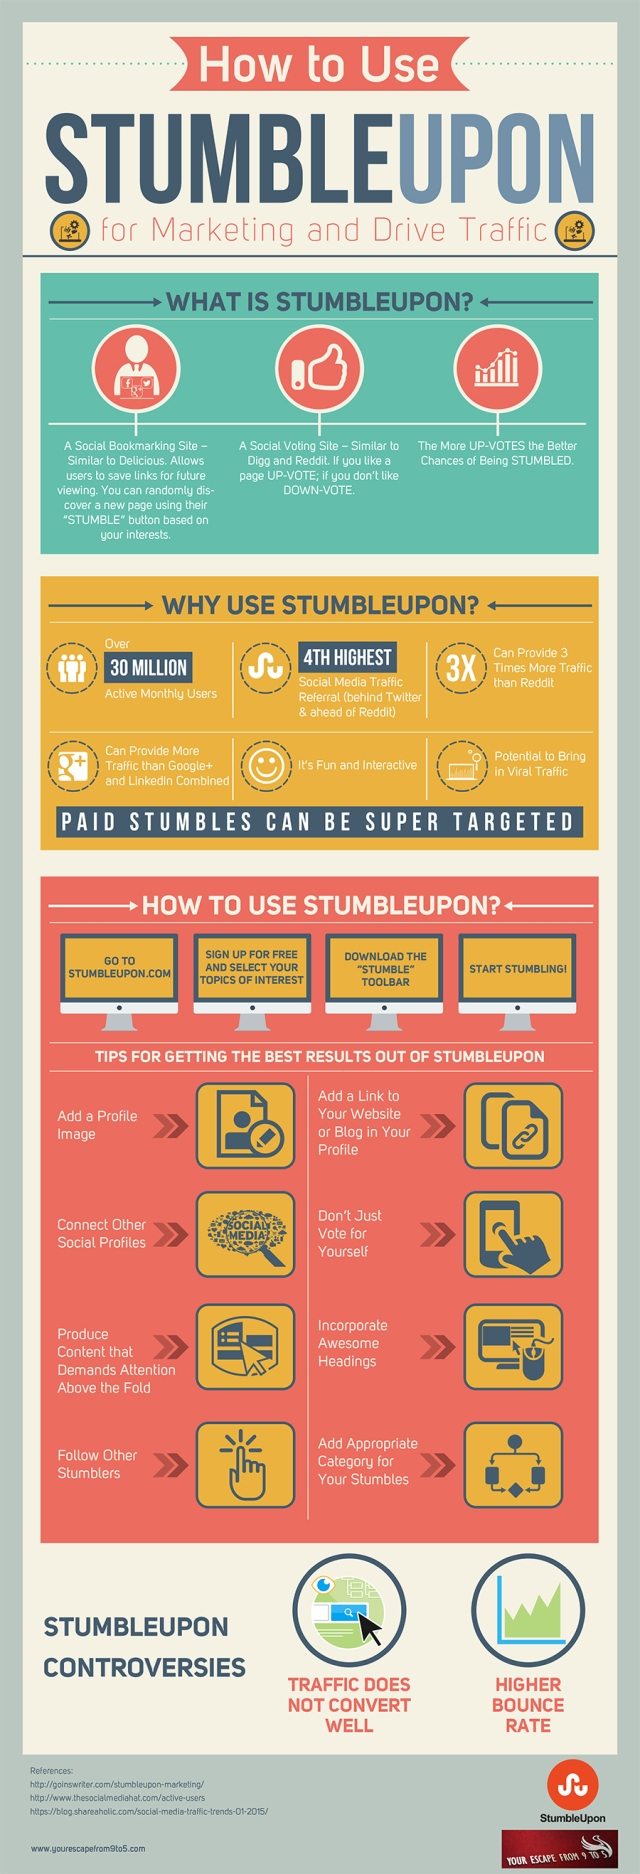 6 Reasons Why You Should Add StumbleUpon to Your Social Media Strategy